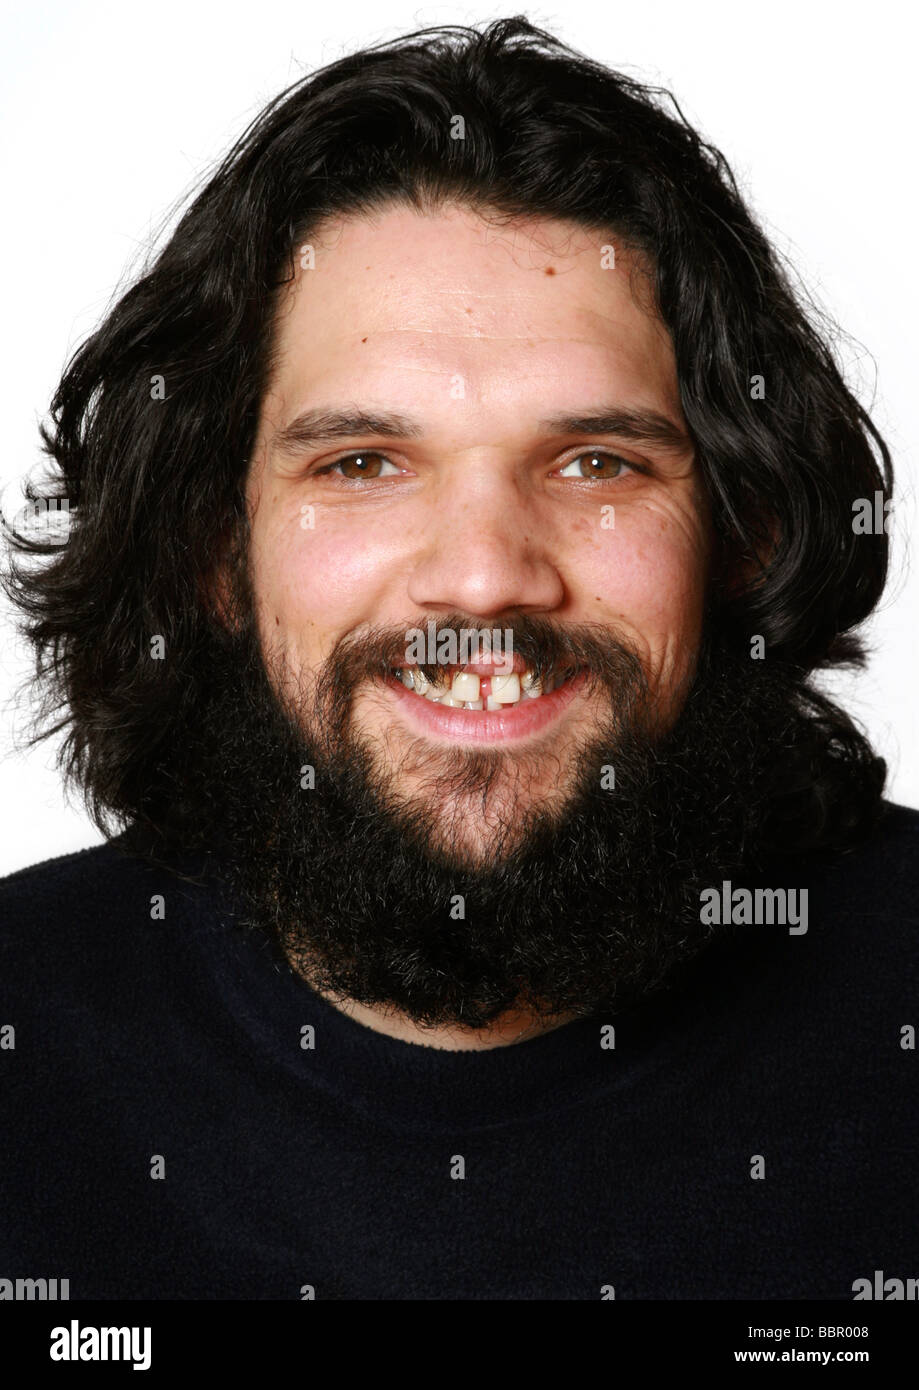 Long-haired man with beard and toothy grin - Stock Image